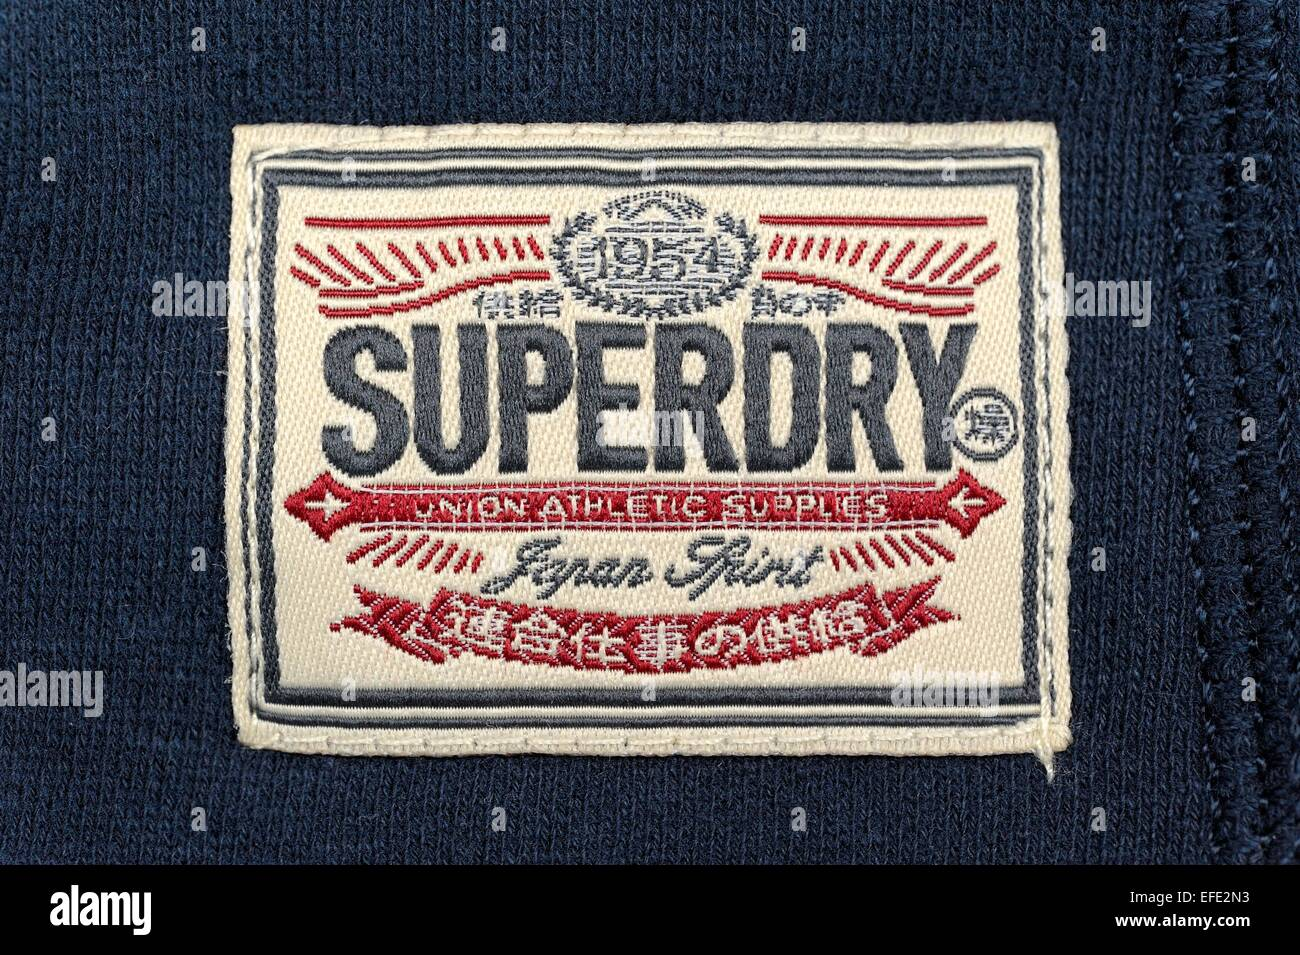 Super Clothing Brand